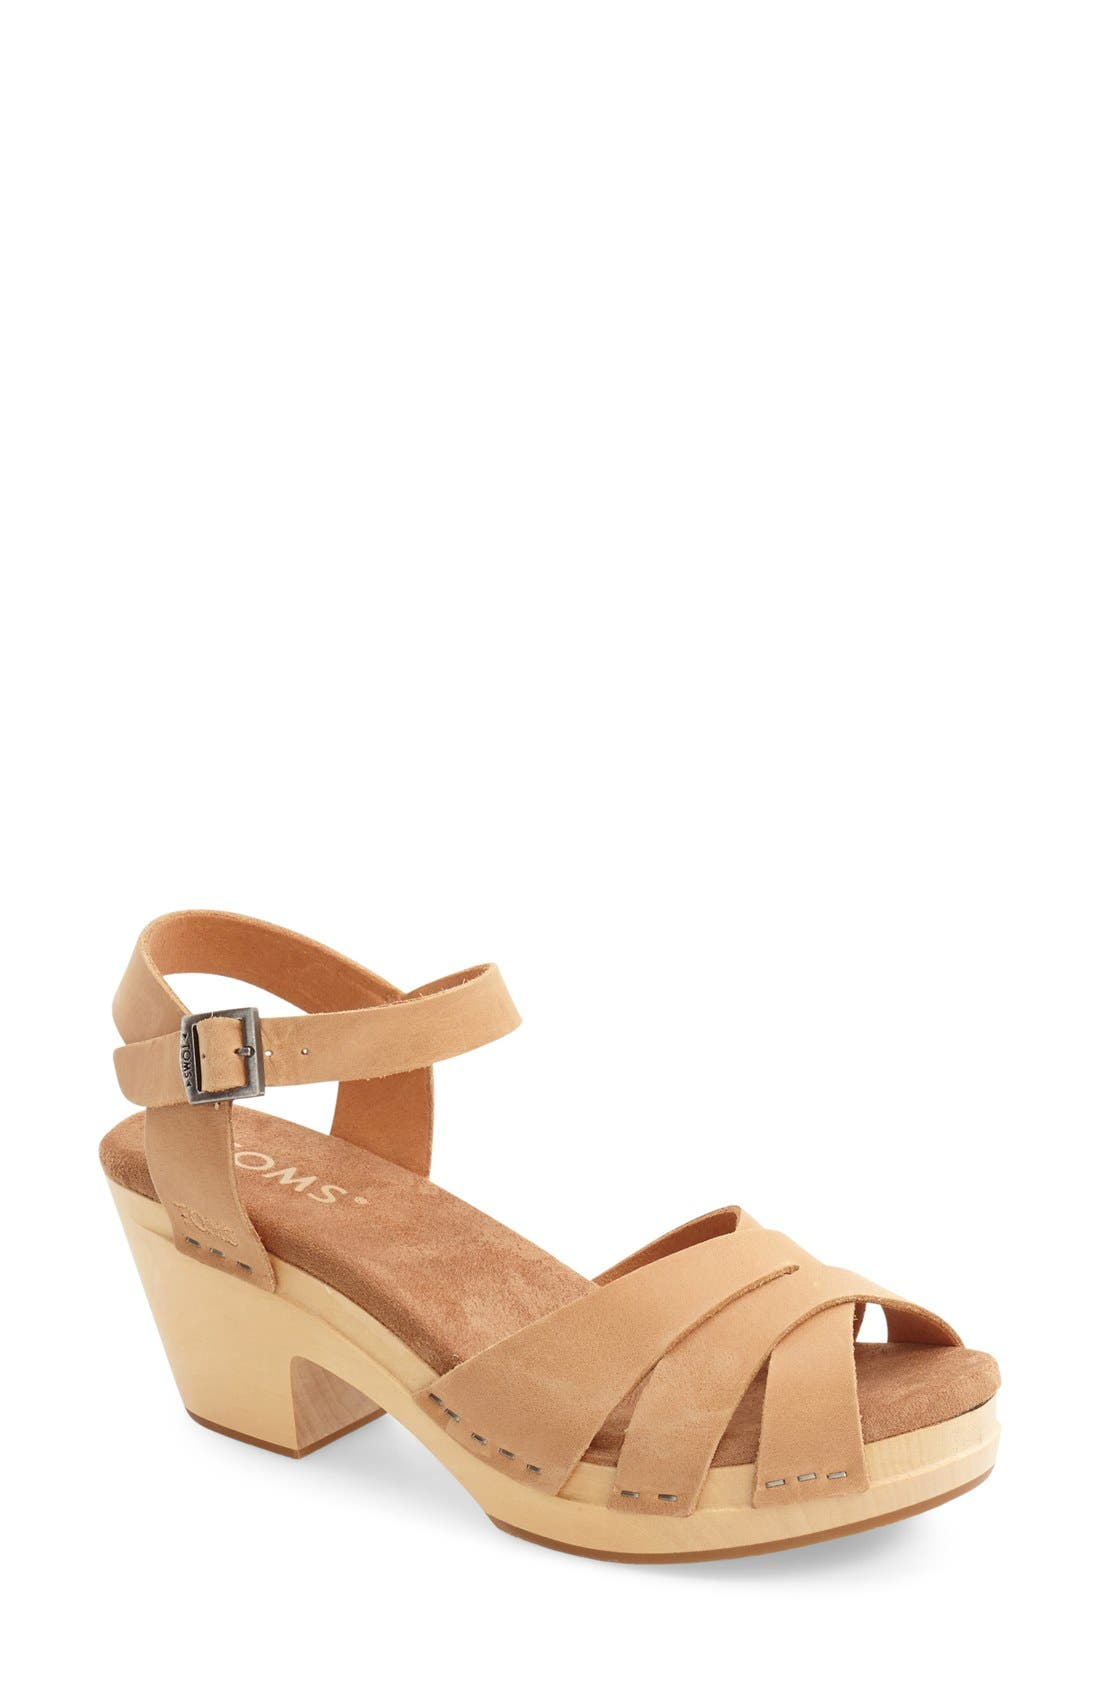 Alternate Image 1 Selected - TOMS 'Beatrix' Leather Sandal (Women)